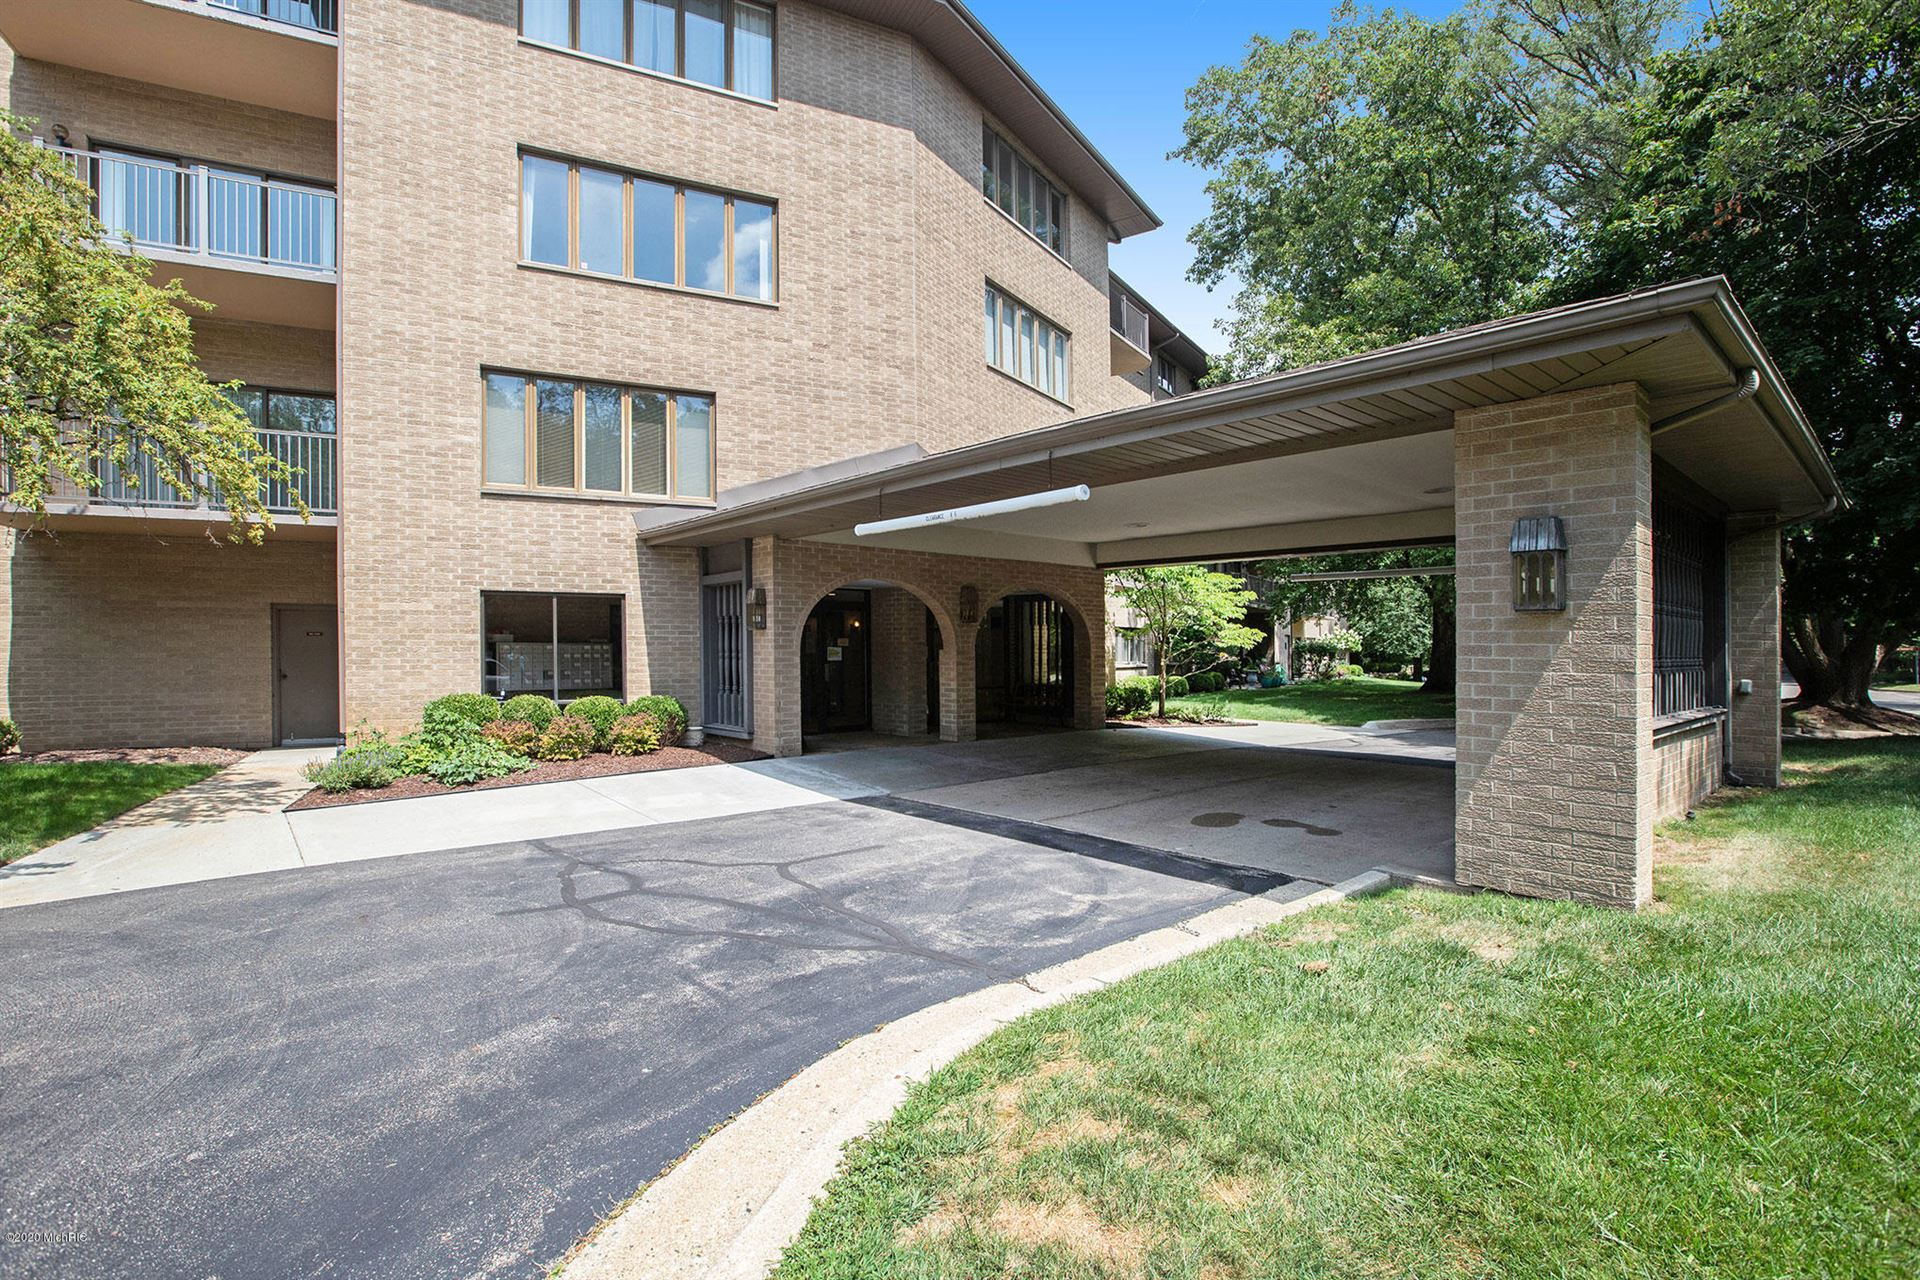 4040 Greenleaf Circle #305, Kalamazoo, MI 49008 - MLS#: 20032429